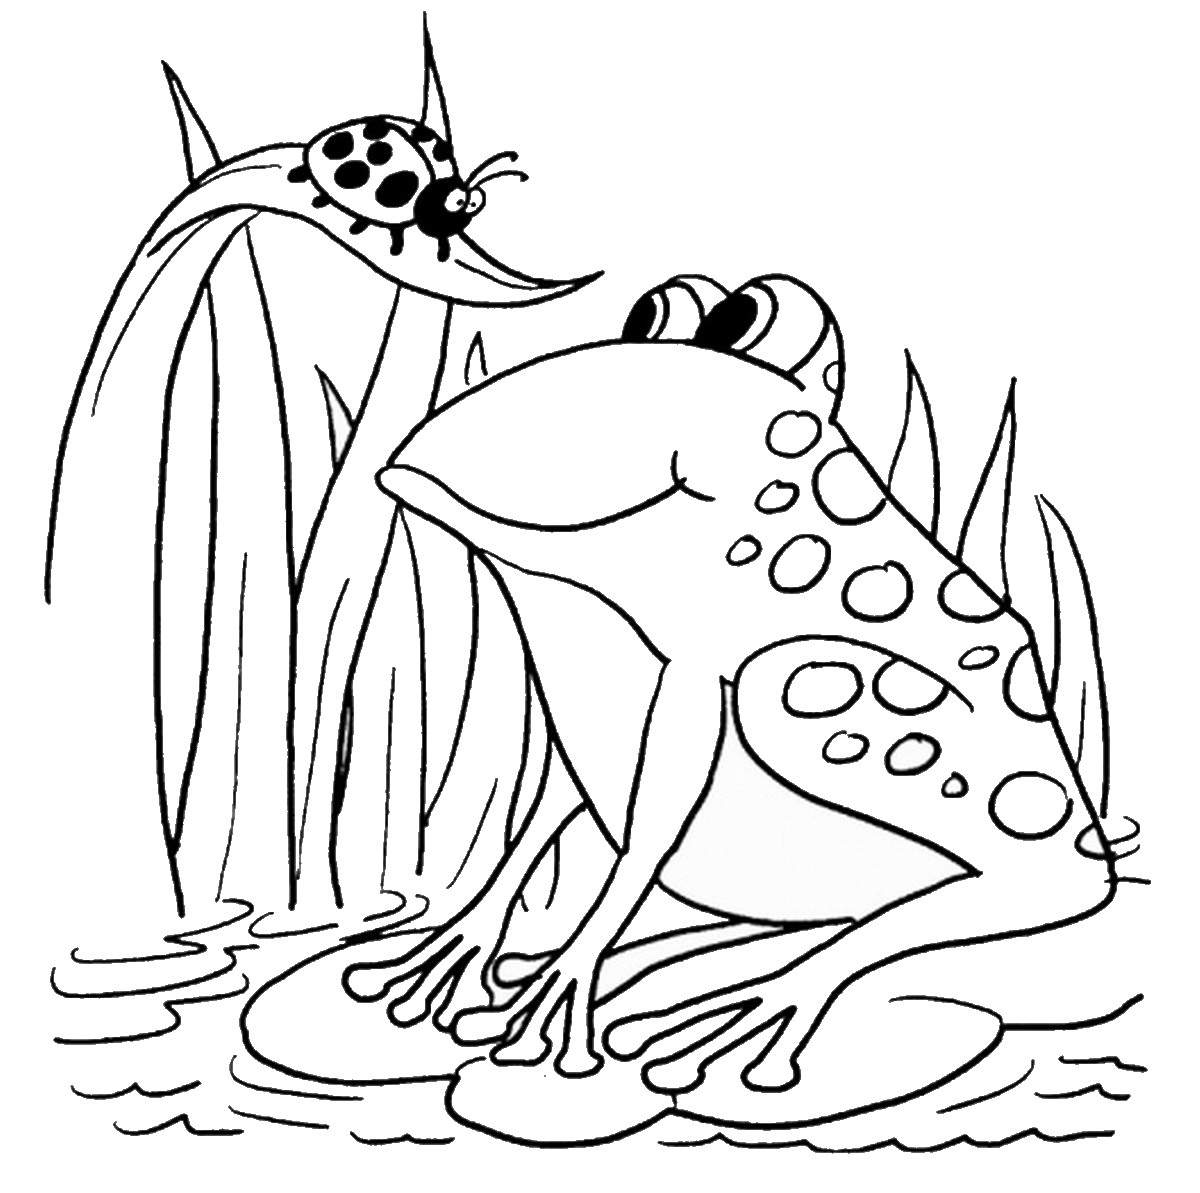 Frog Coloring Pages Birthday